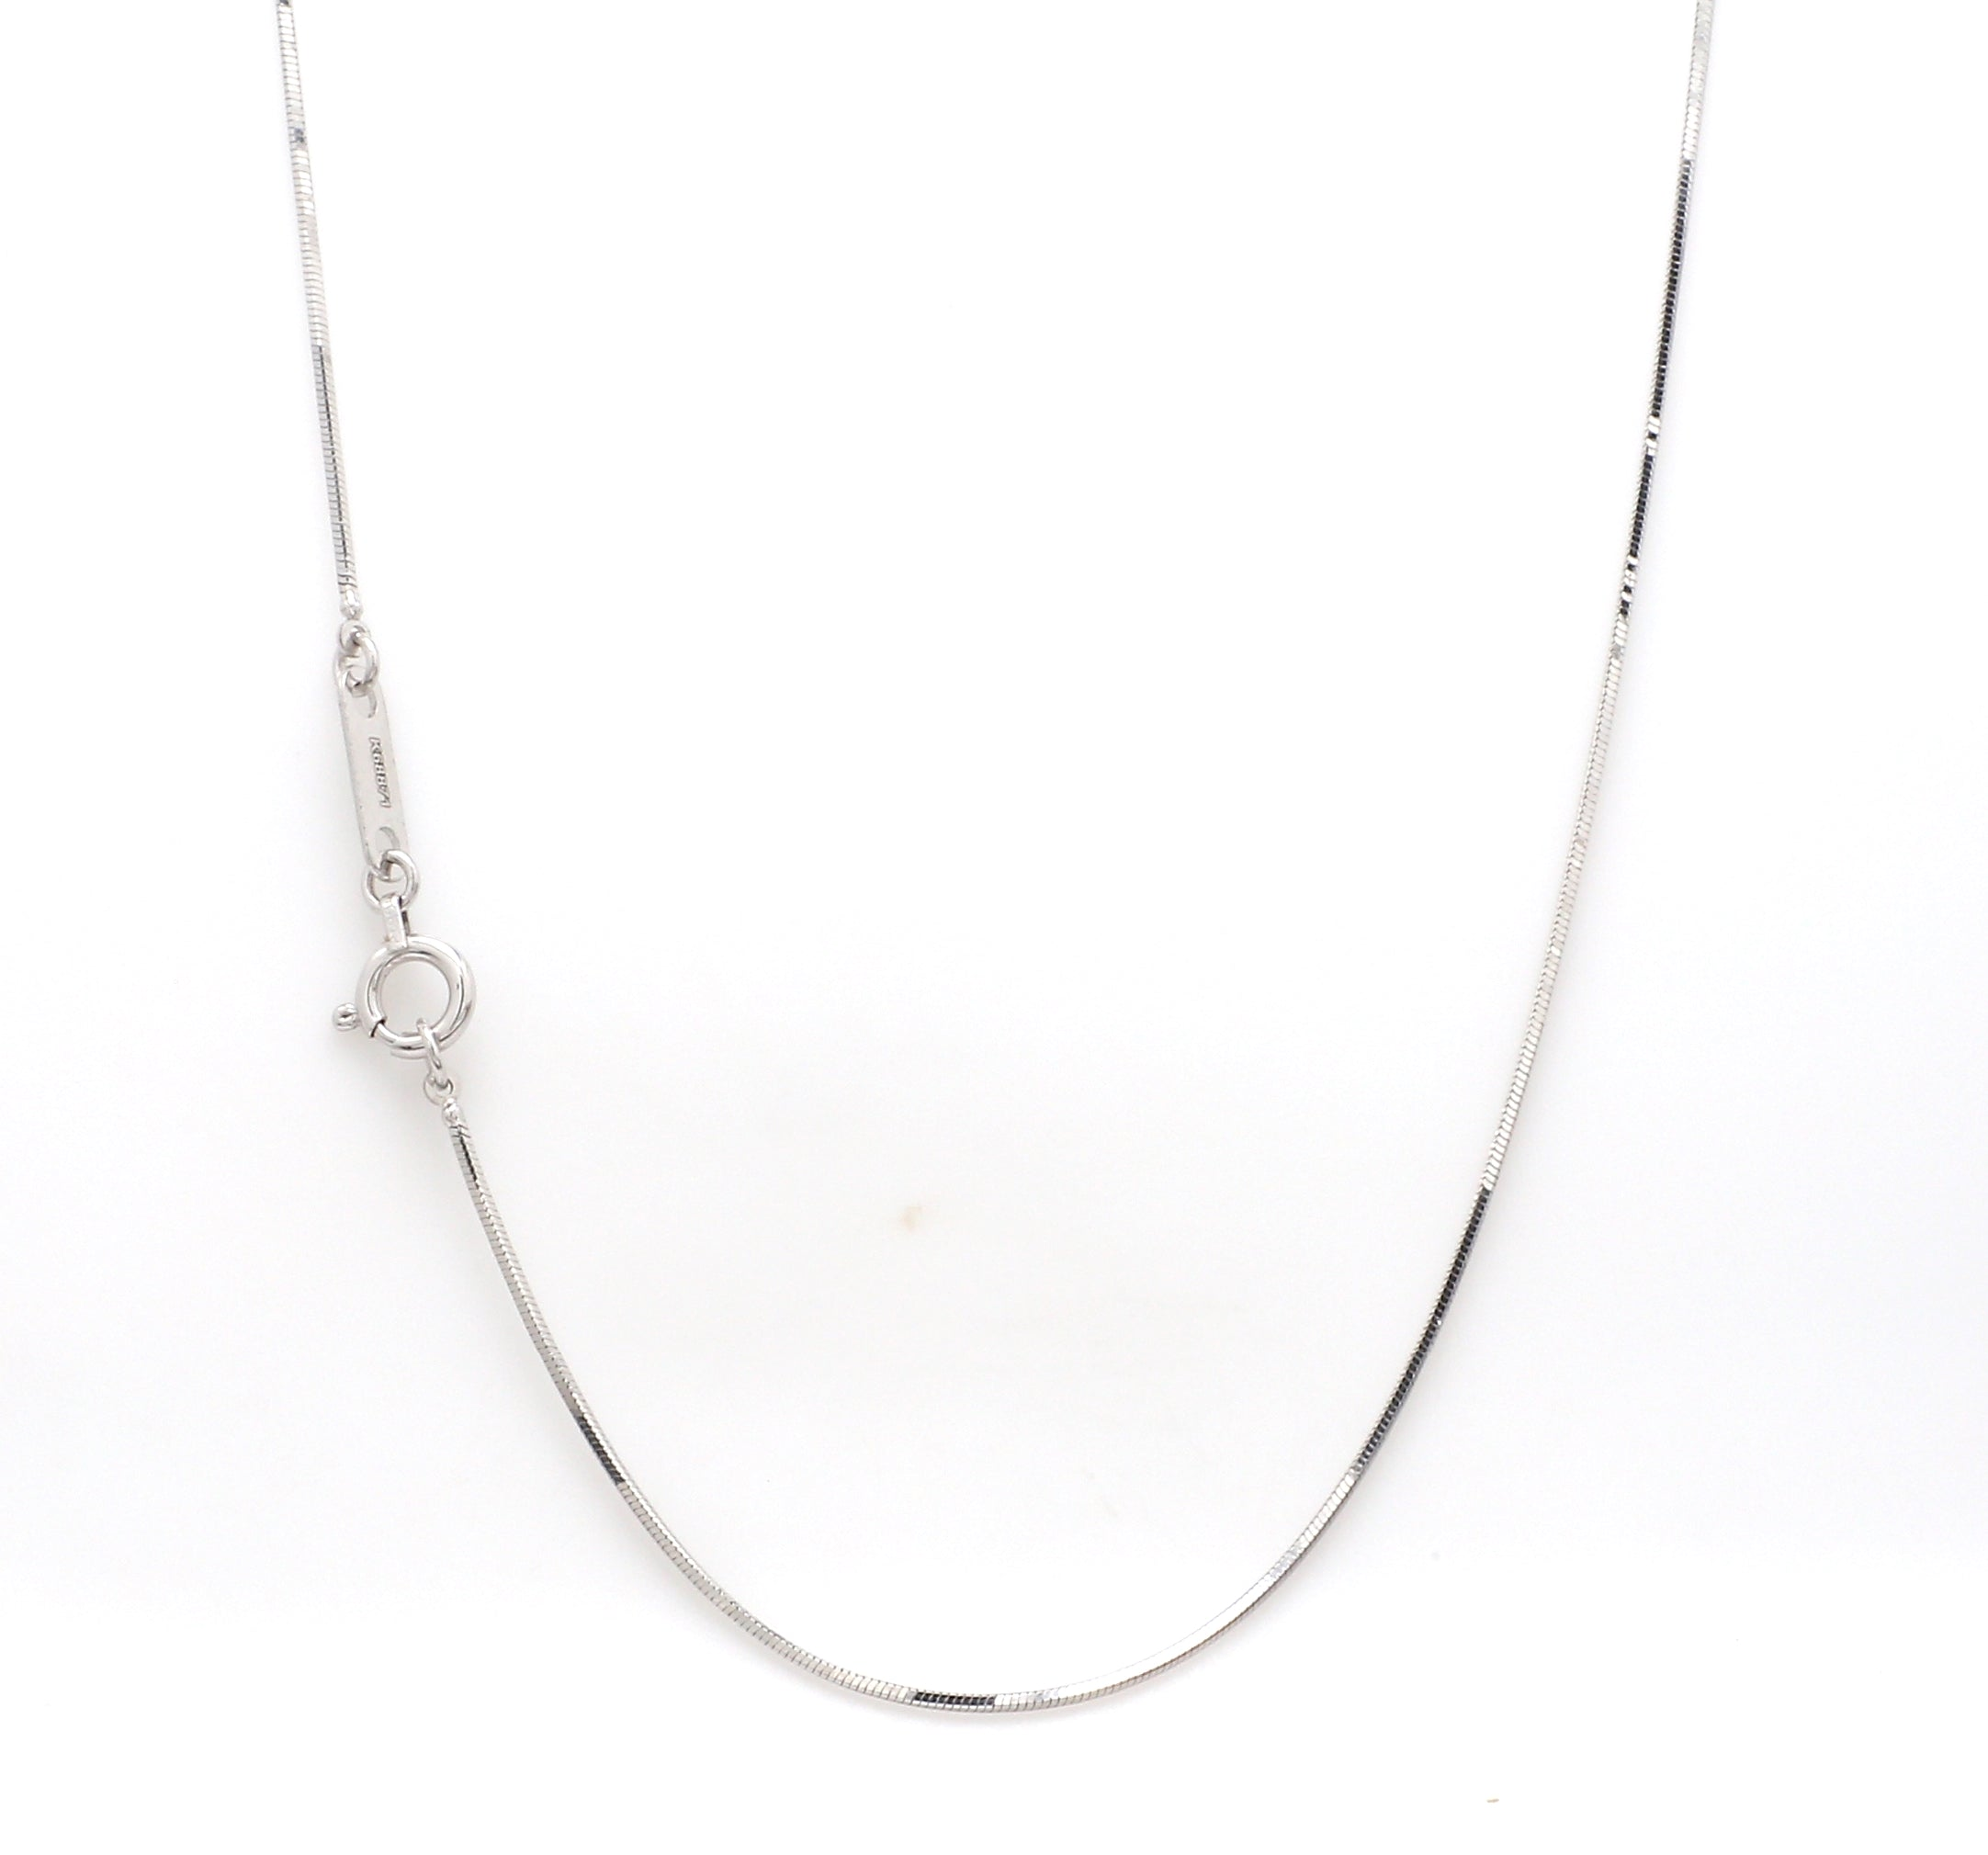 Thin Dazzling Shiny Platinum Chain JL PT 747 - Thin